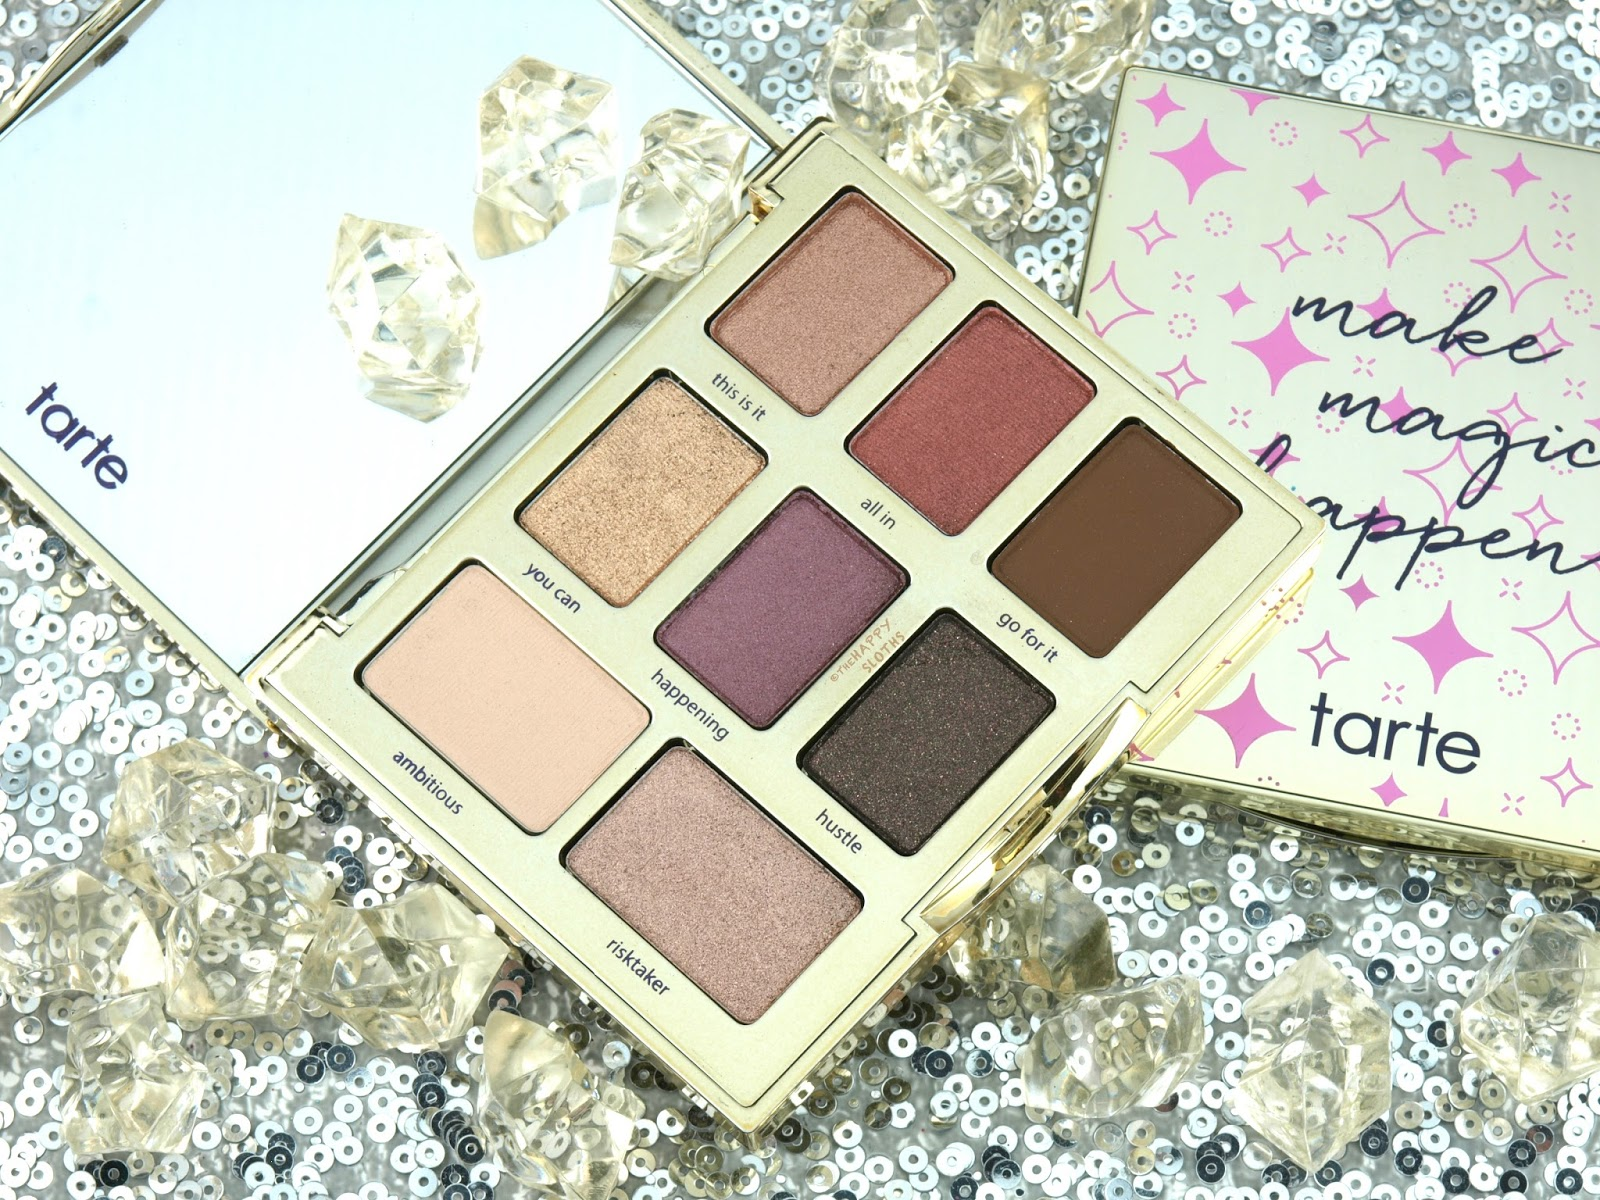 Tarte Dream Big Amazonian Clay Eyeshadow Palette: Review and Swatches